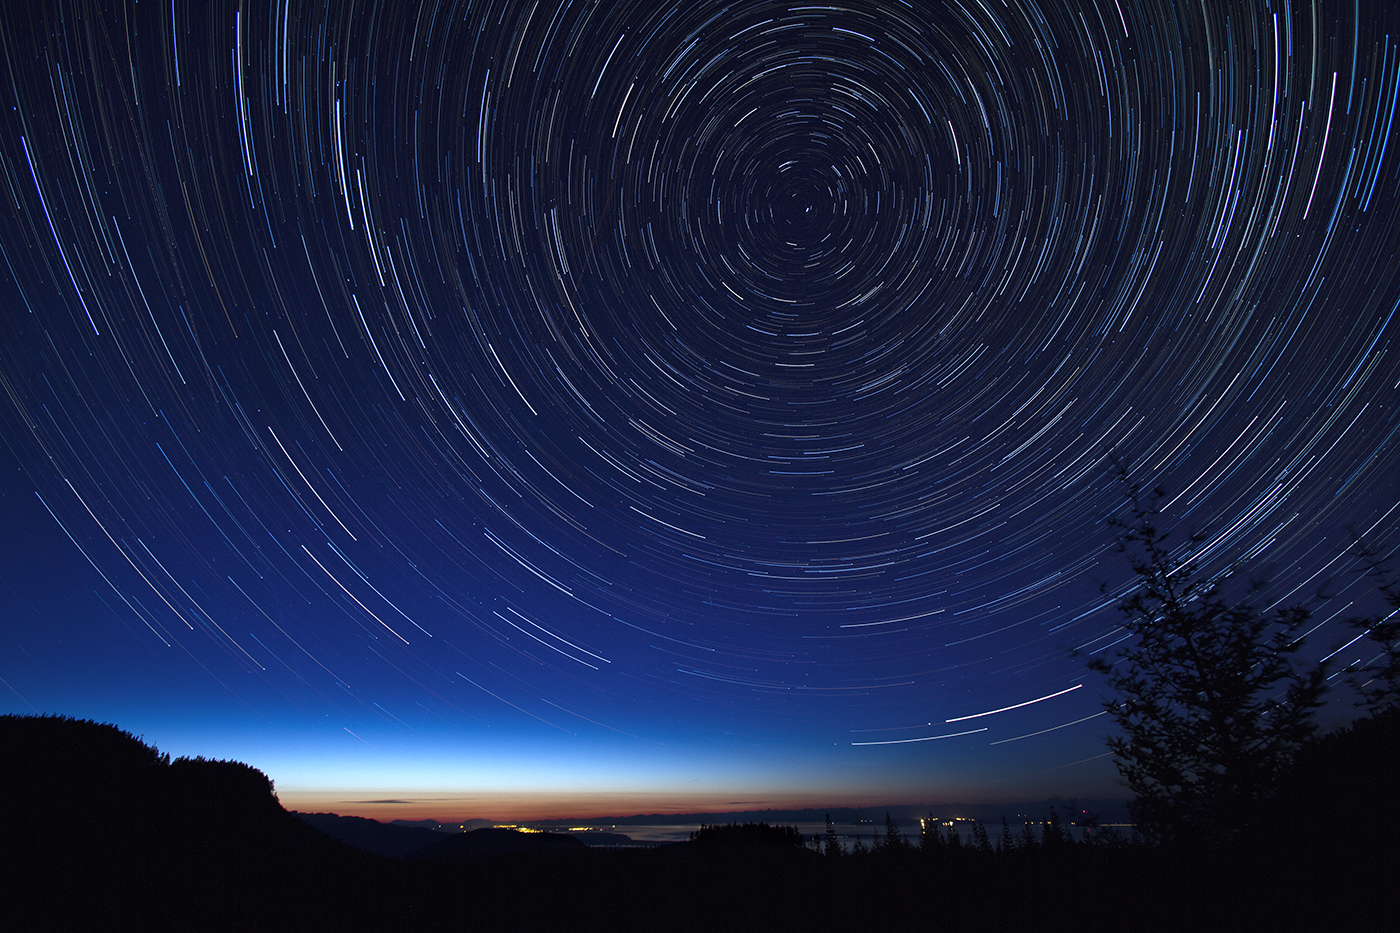 Star Trails Over Georgia Strait with a view of the lights of Courtenay and Comox